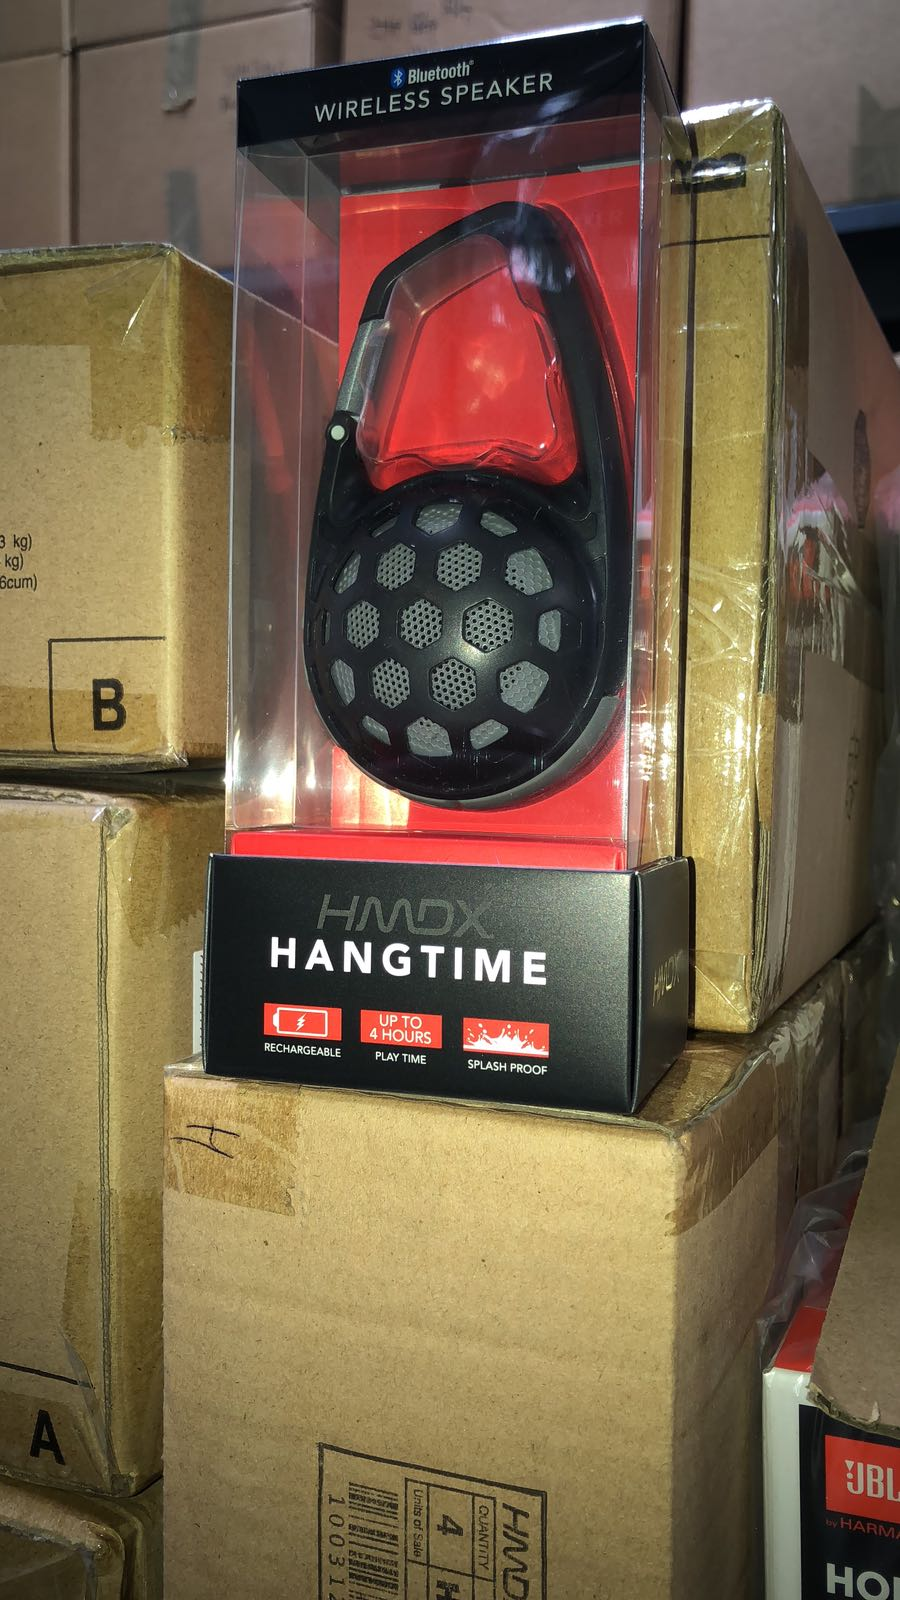 WTS: HMDX HANGTIME PORTABLE WIRELESS SPEAKER | $8.49? AVAILABLE IN BLACK OR TEAL. MIAMI READY STOCK.